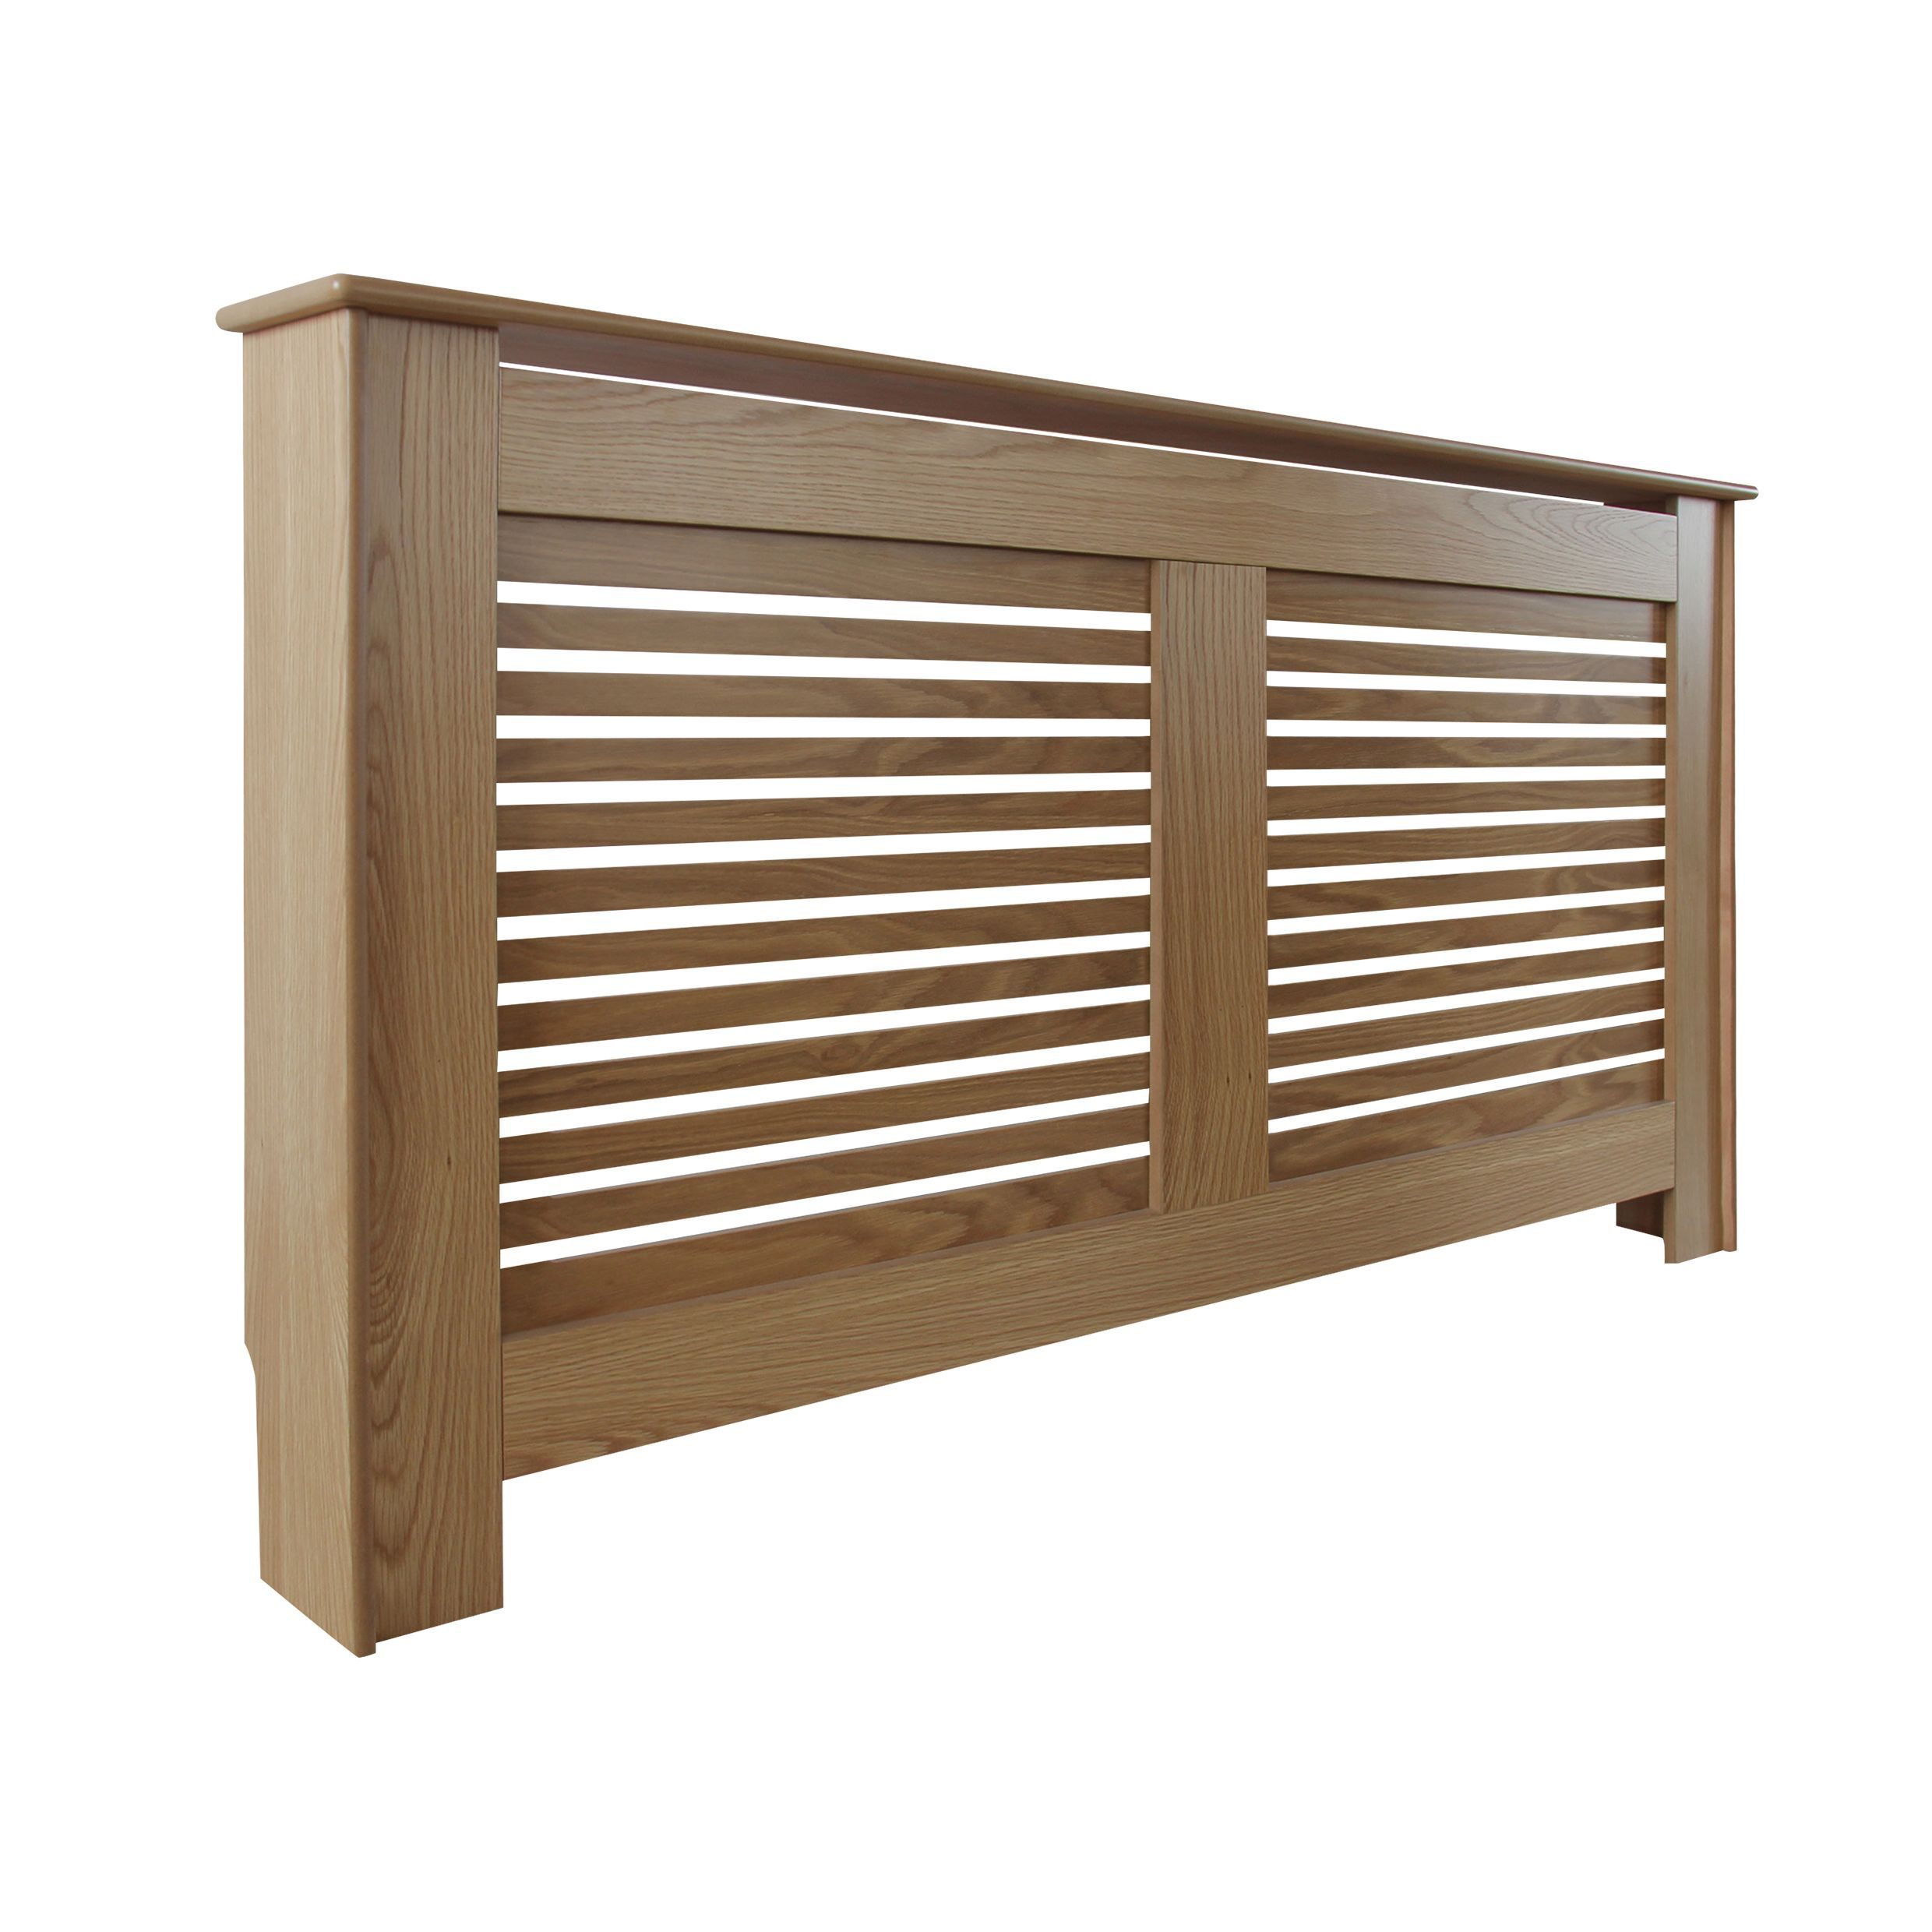 New Suffolk Large Oak Veneer Radiator Cover Departments